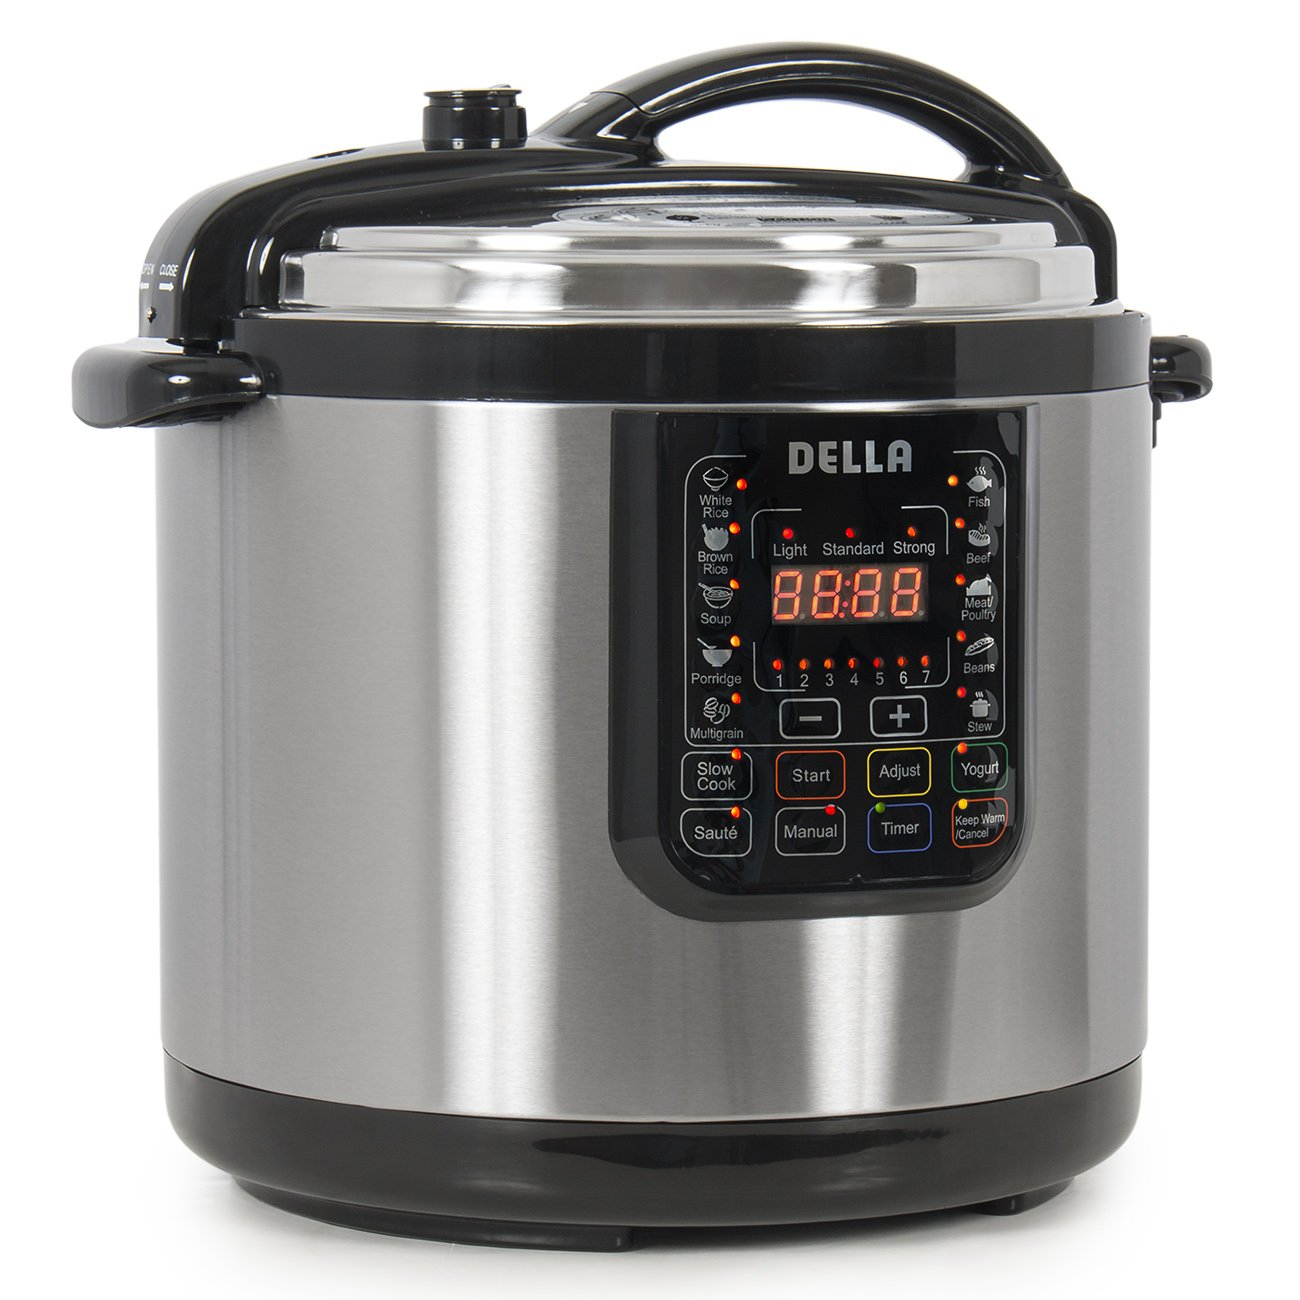 Della 048-GM-48259 Electric XL Pressure Cooker 8 Quart Stainless Steel